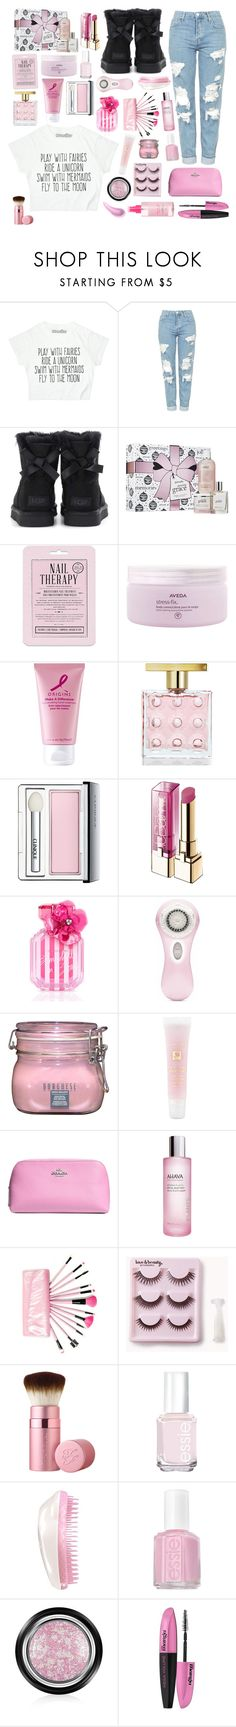 """""""Happy Easter🌷😇"""" by pumpkinseed112 ❤ liked on Polyvore featuring Topshop, UGG, philosophy, Love 21, Aveda, Origins, Michael Kors, Clinique, L'Oréal Paris and Victoria's Secret"""